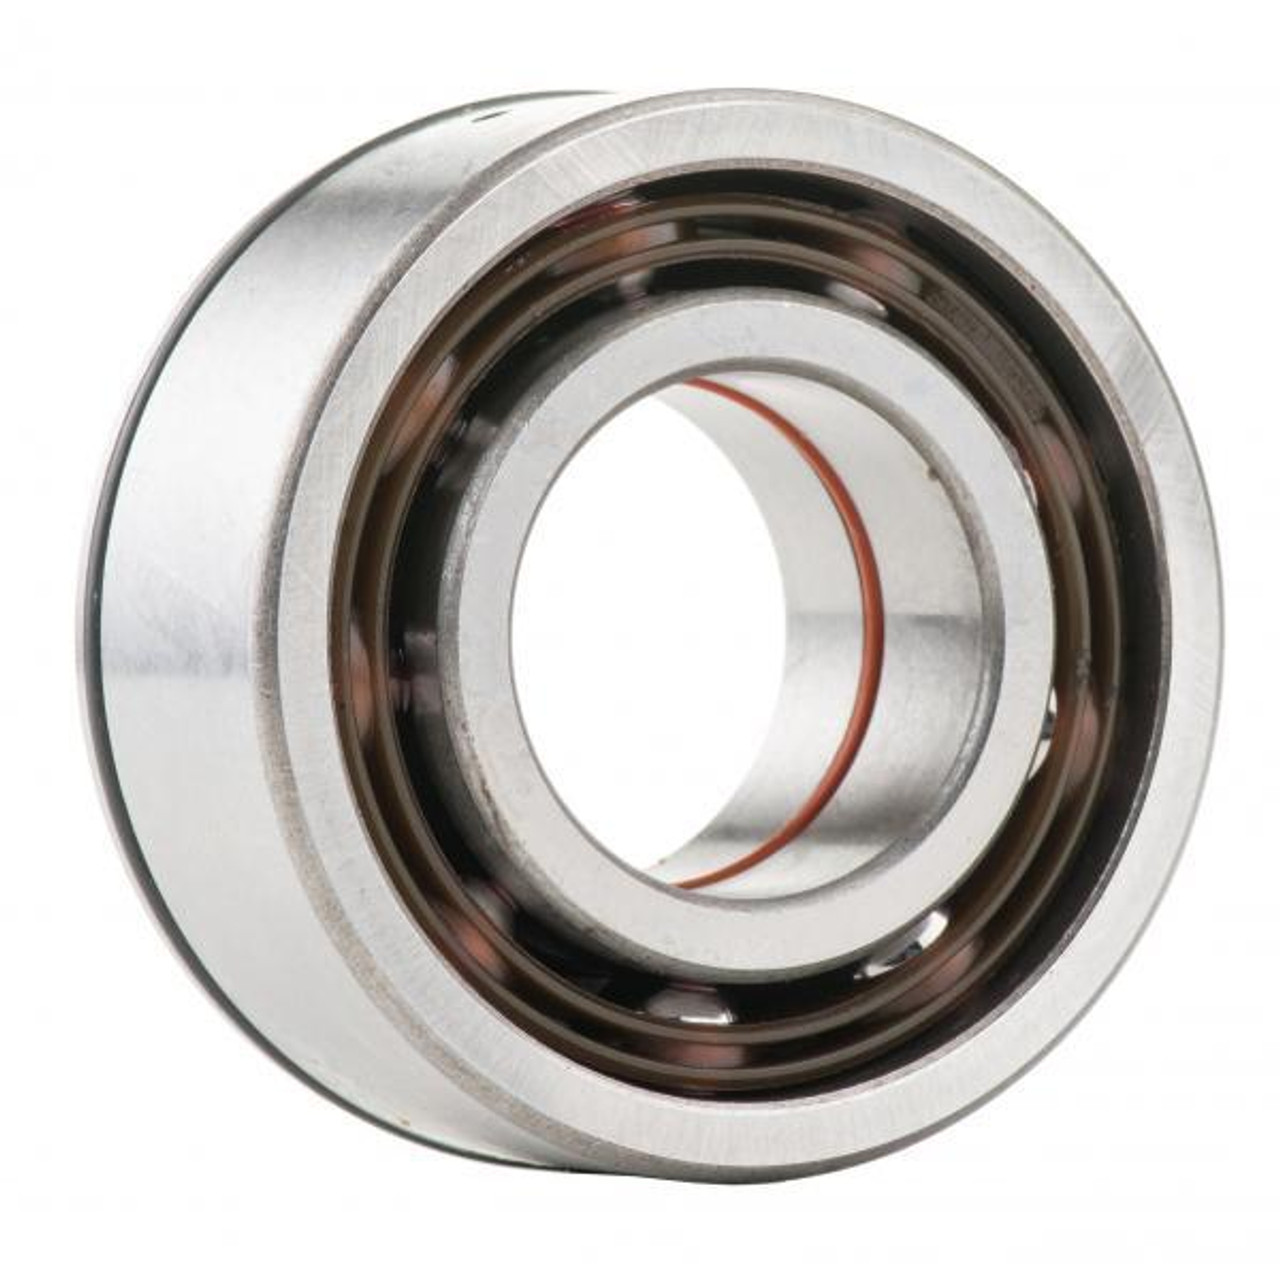 Crankshaft bearing with oil seal with PTFE lip, left view